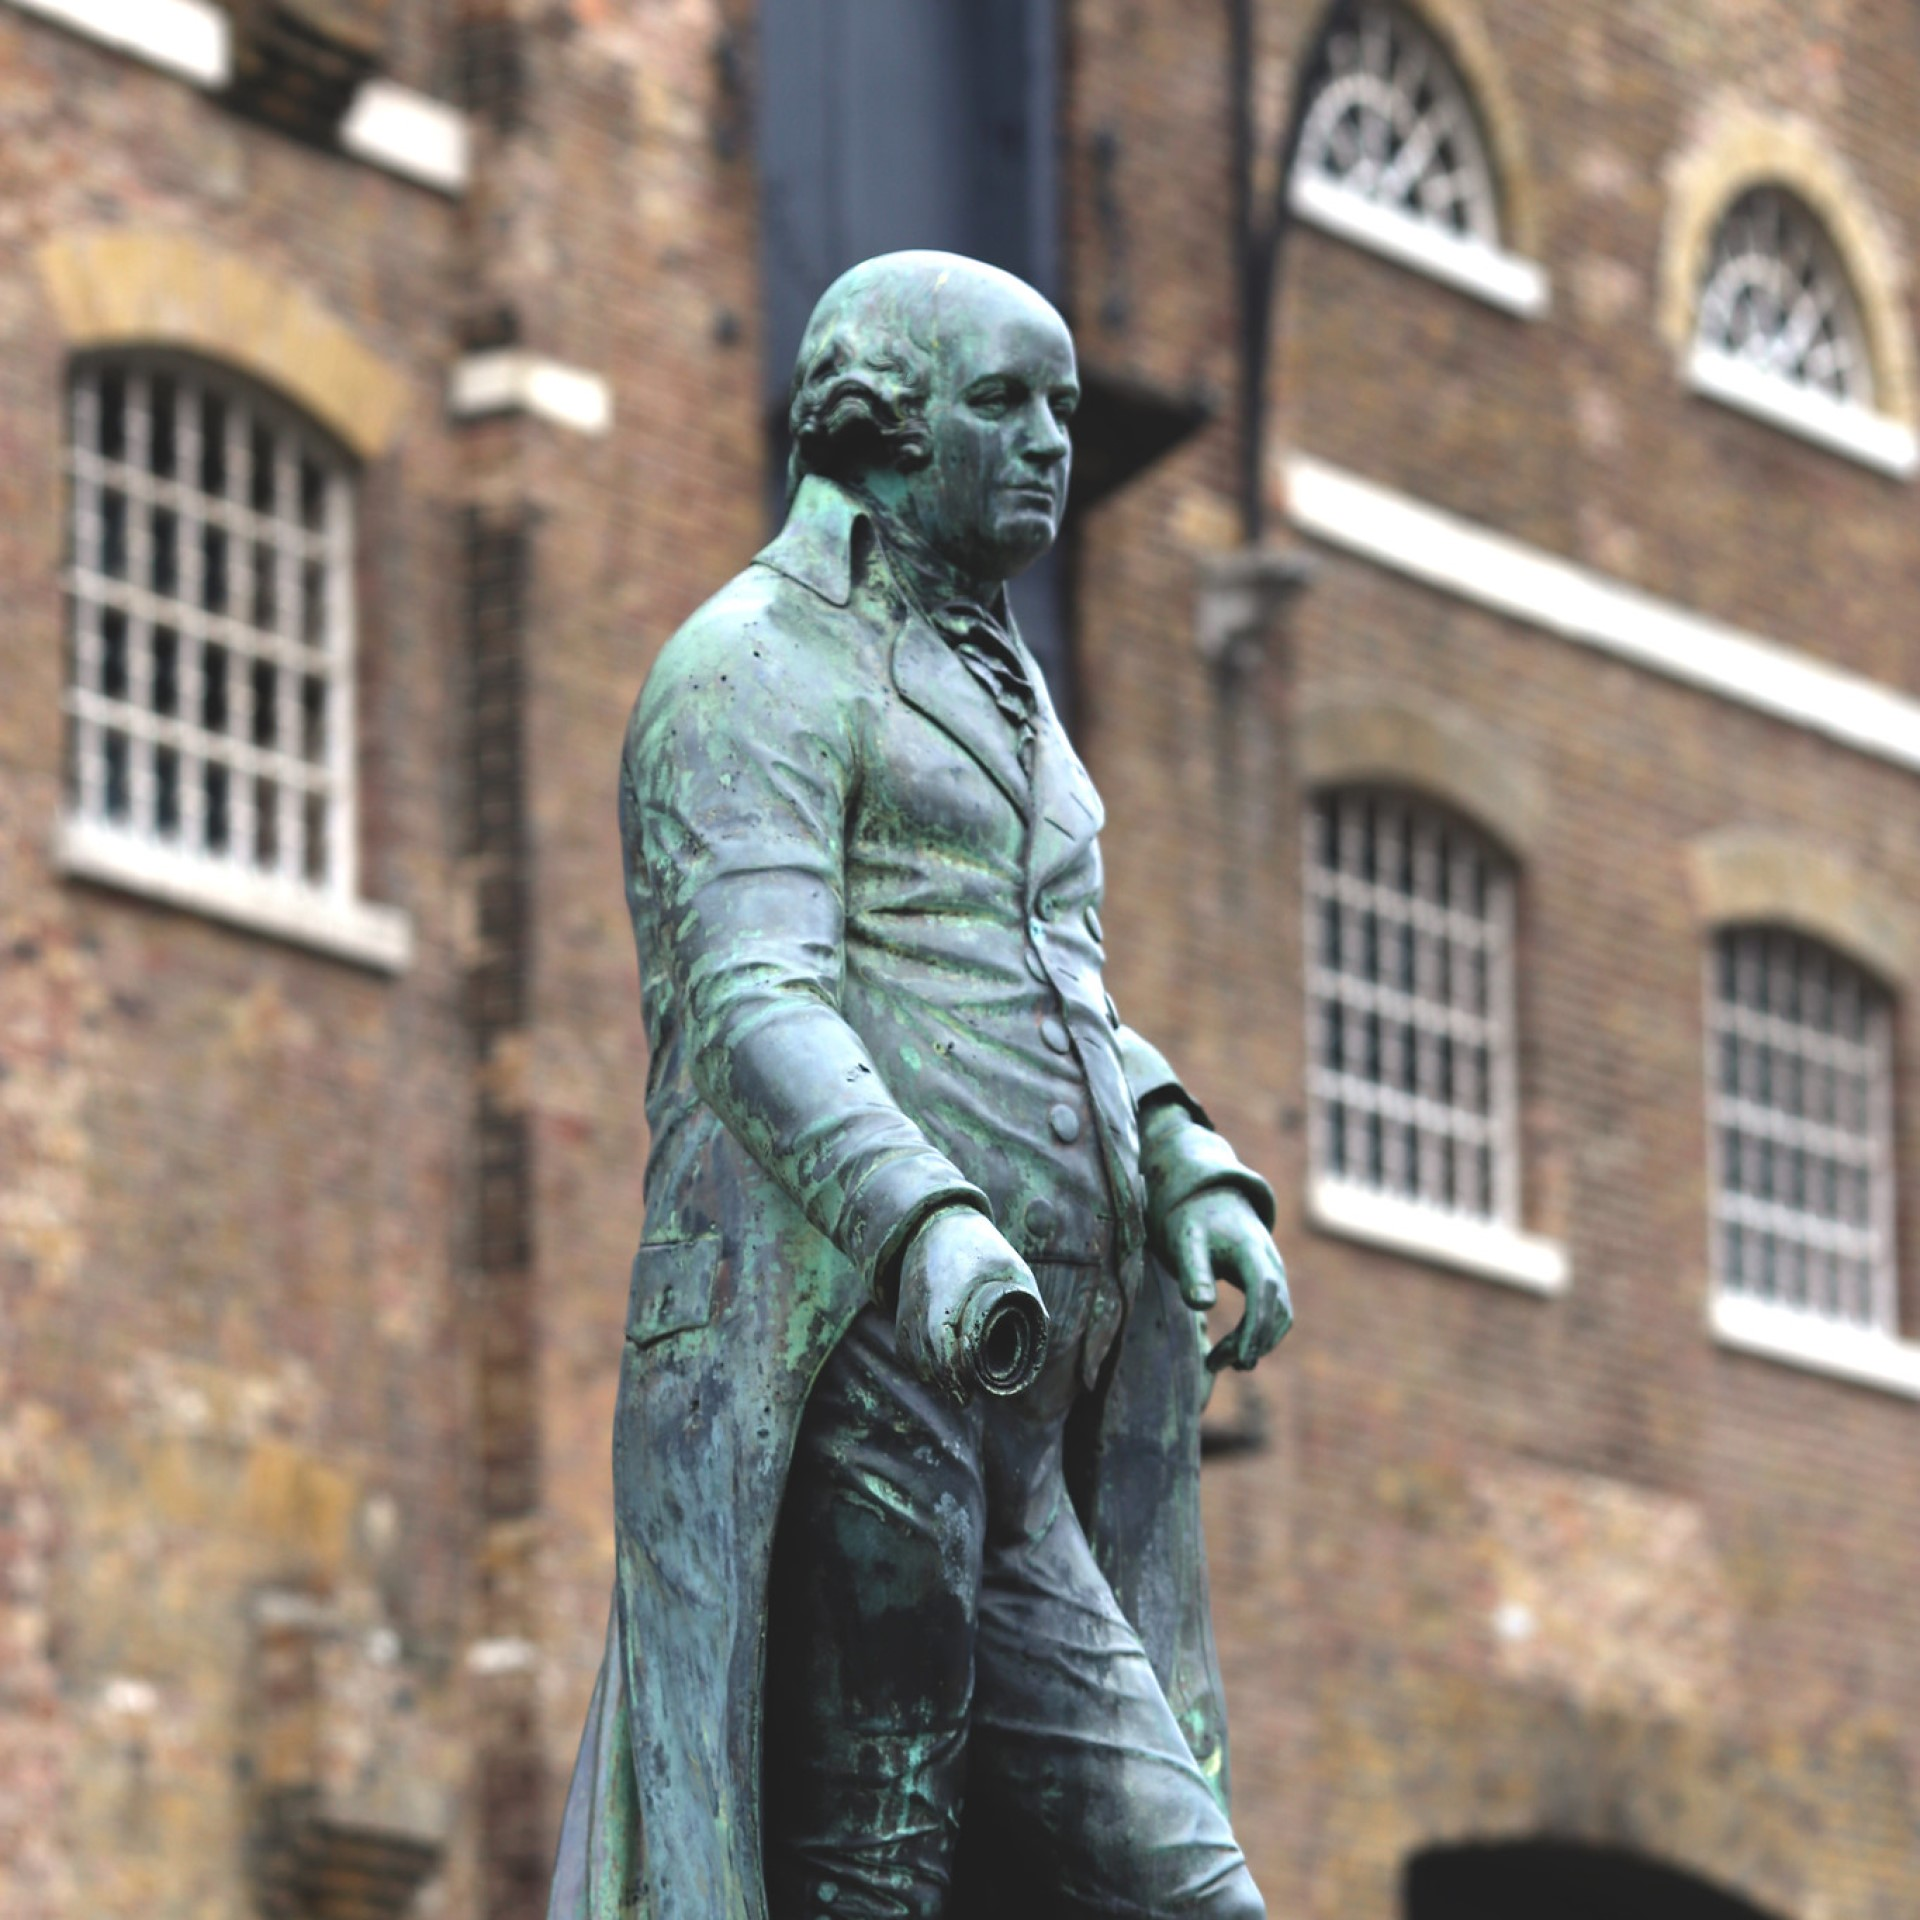 Statue of slaveholder Robert Milligan at West India Quay, east London